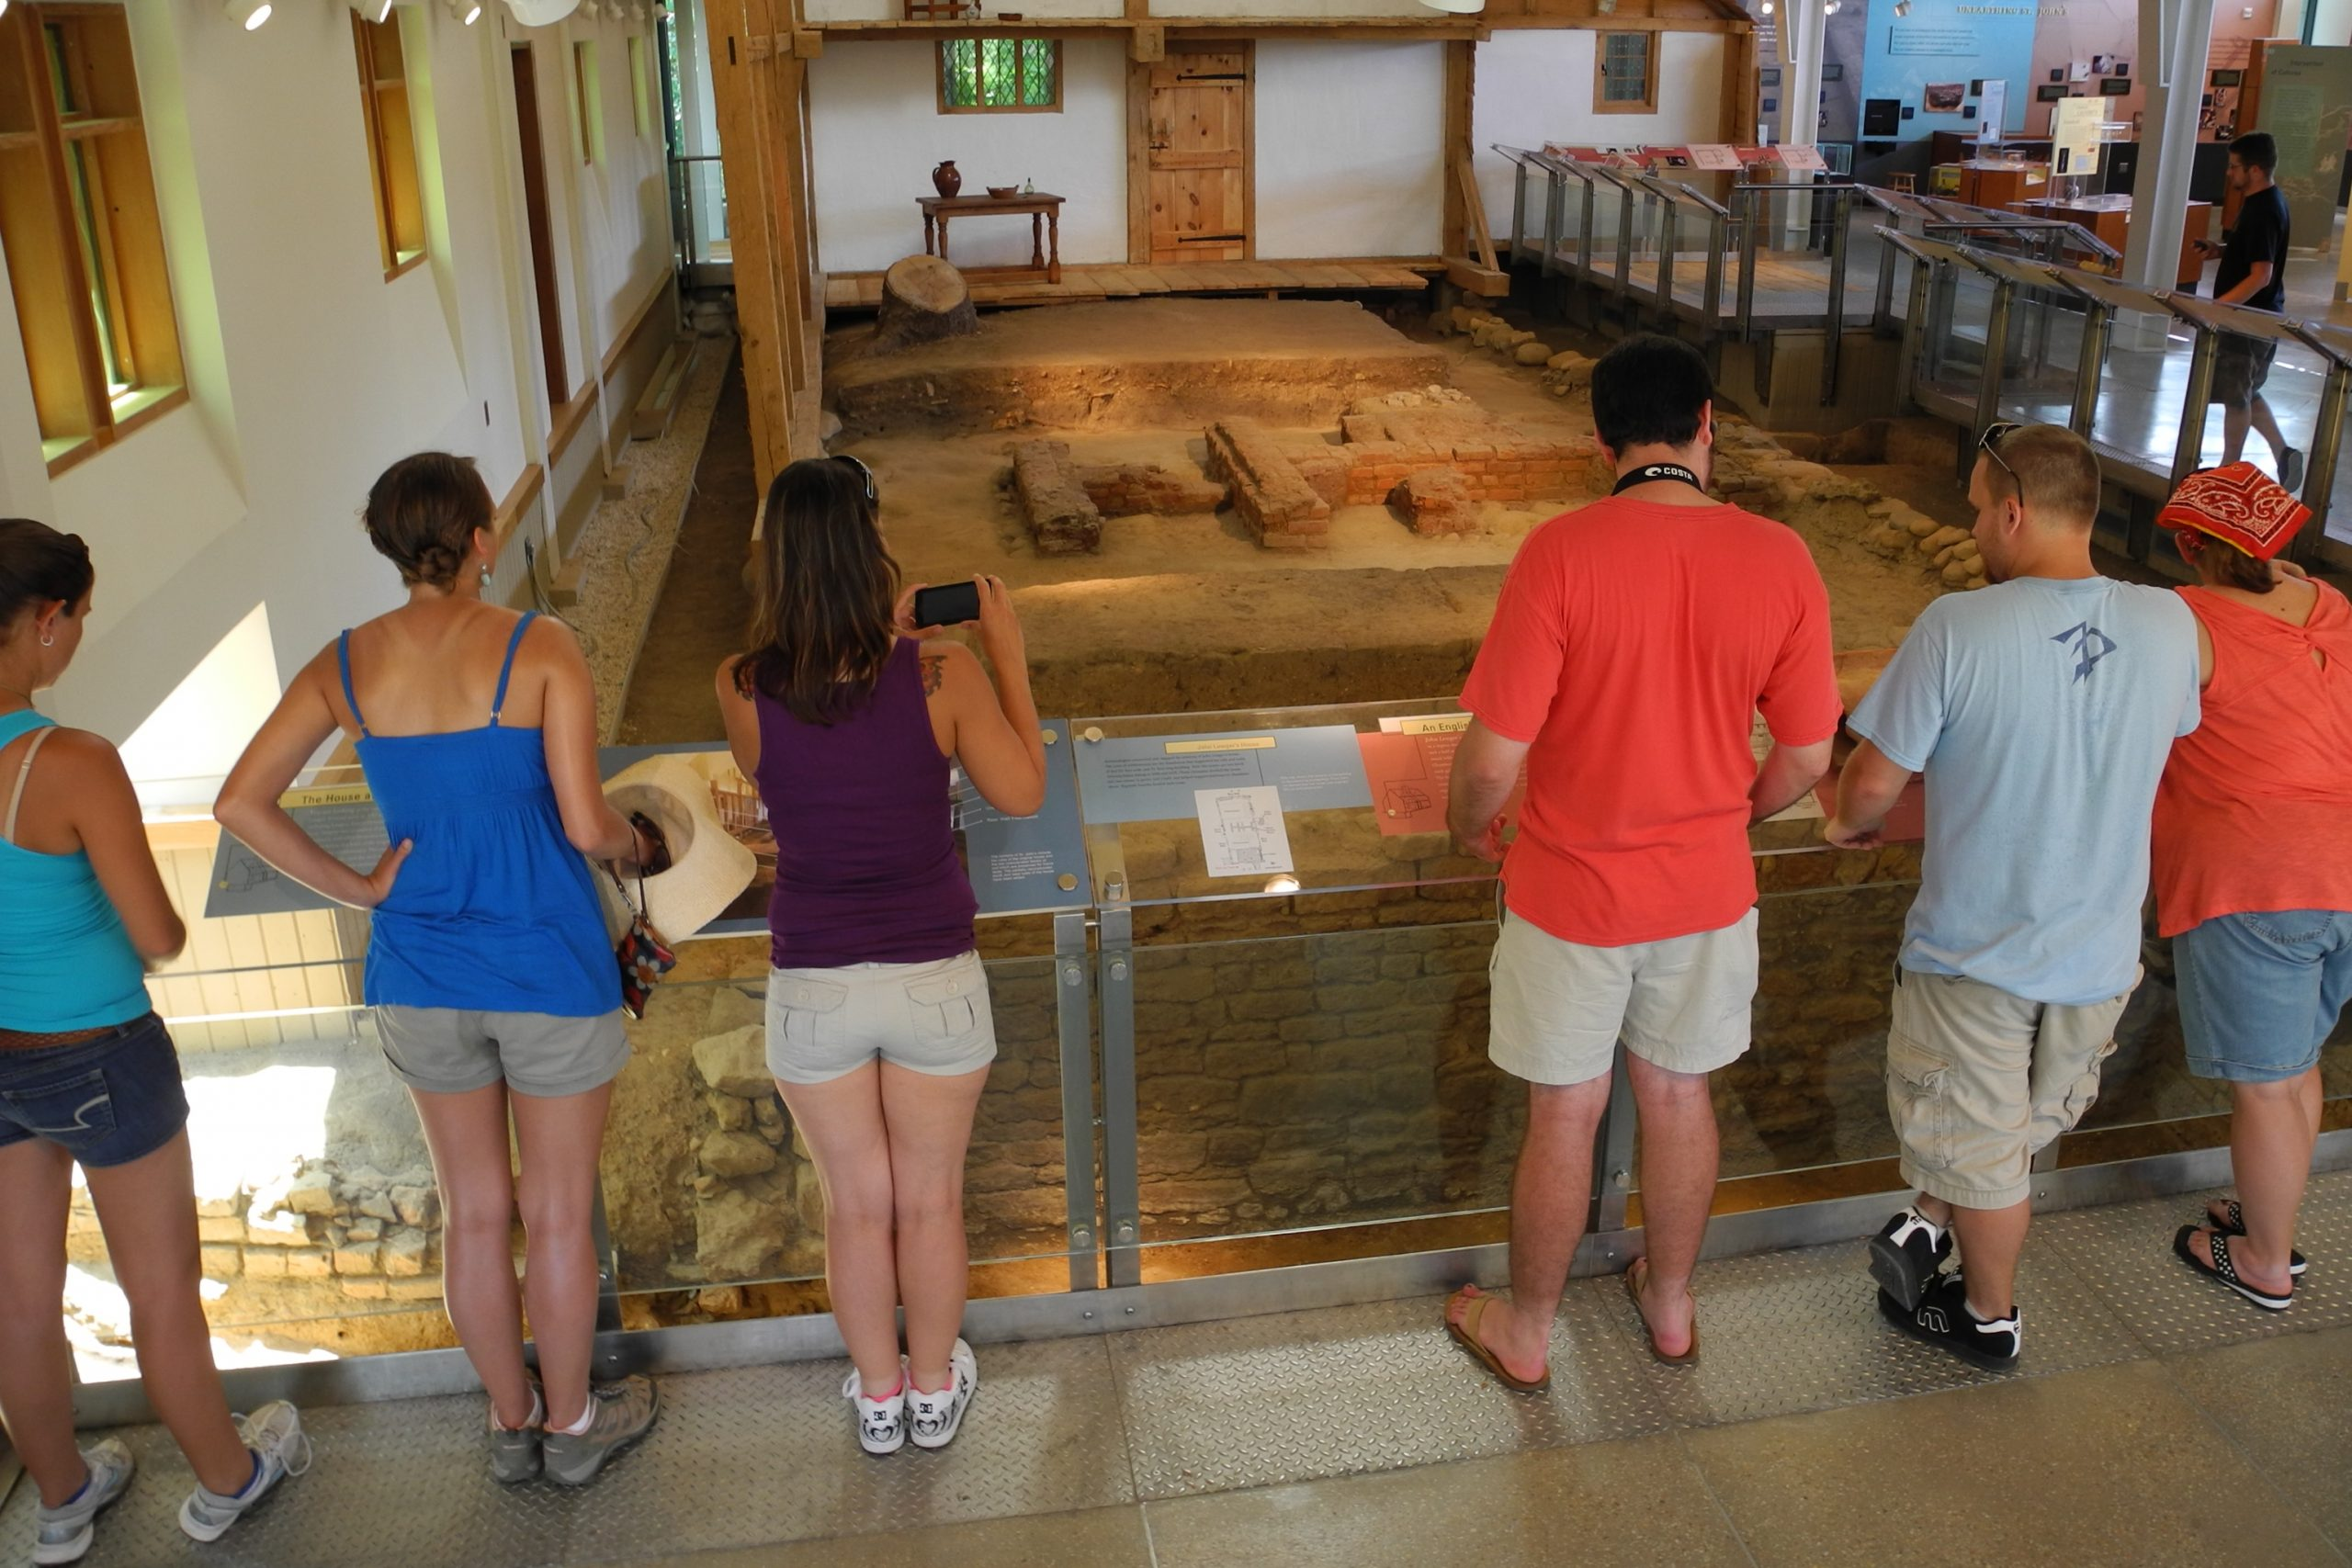 A group of visitors looks at the archaeological remains of house built in the 1600's